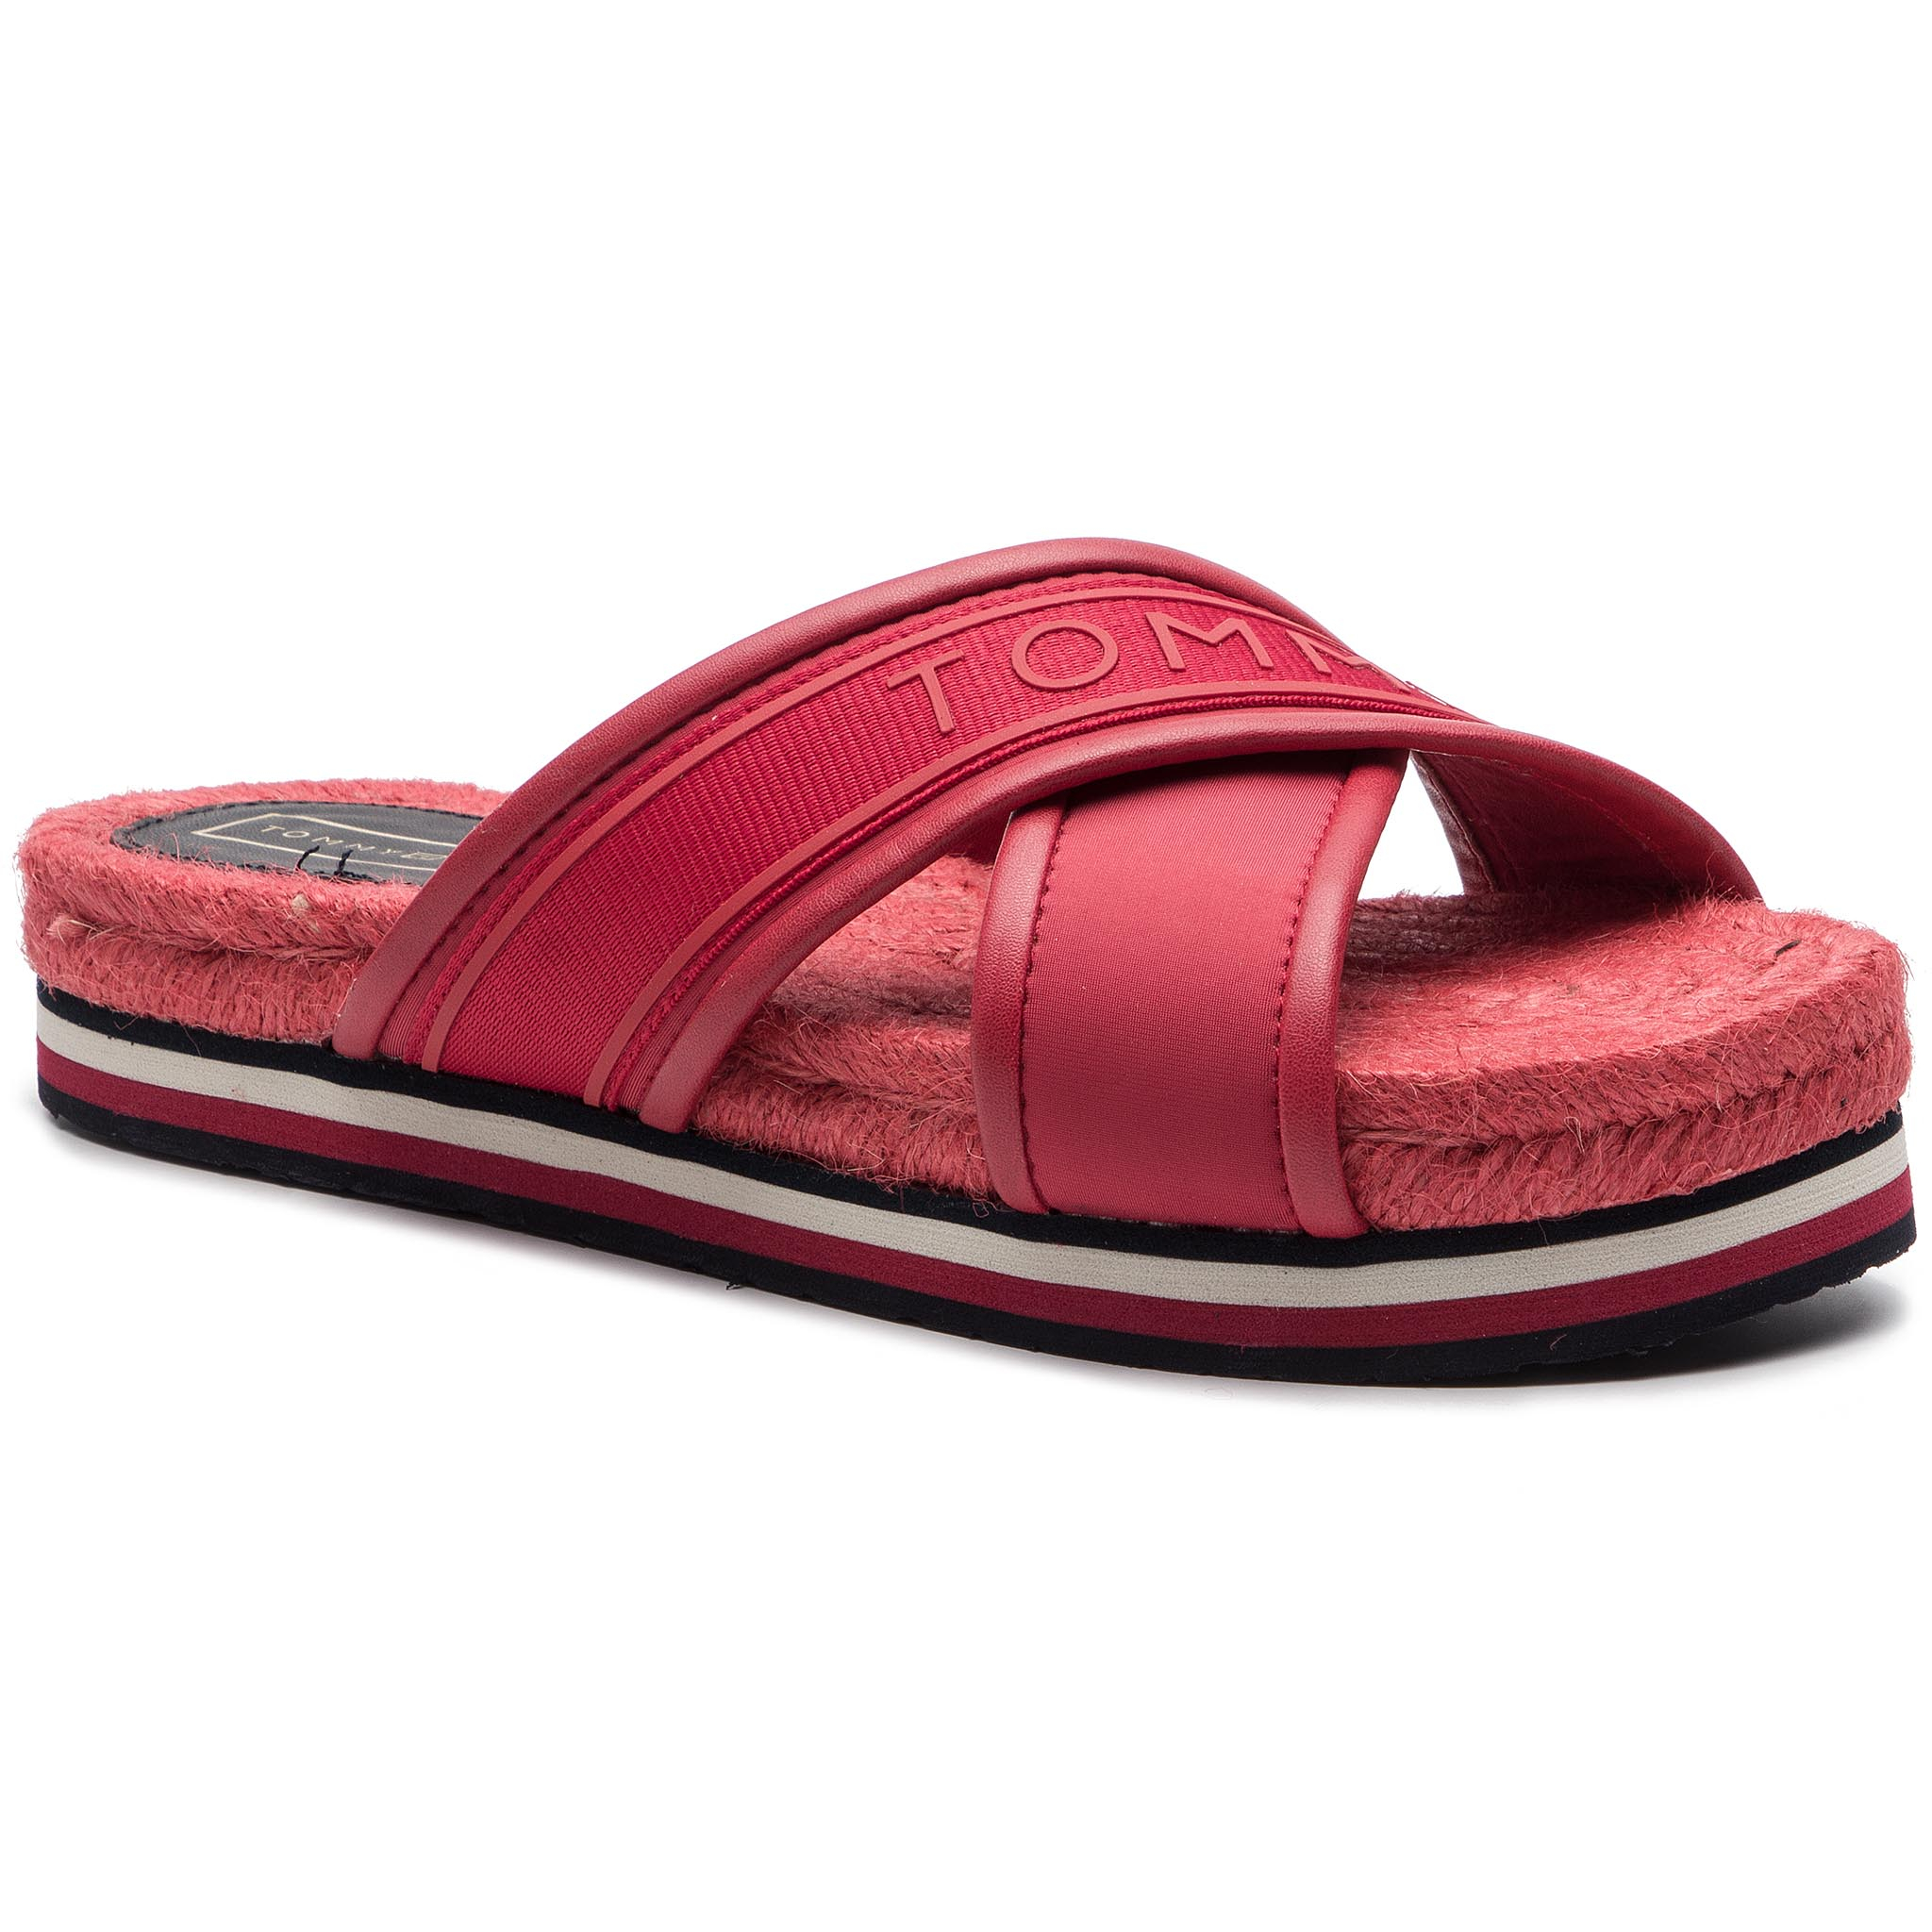 Espadrile TOMMY HILFIGER - Colorful Tommy Flat Sandal FW0FW04159 True Red 665